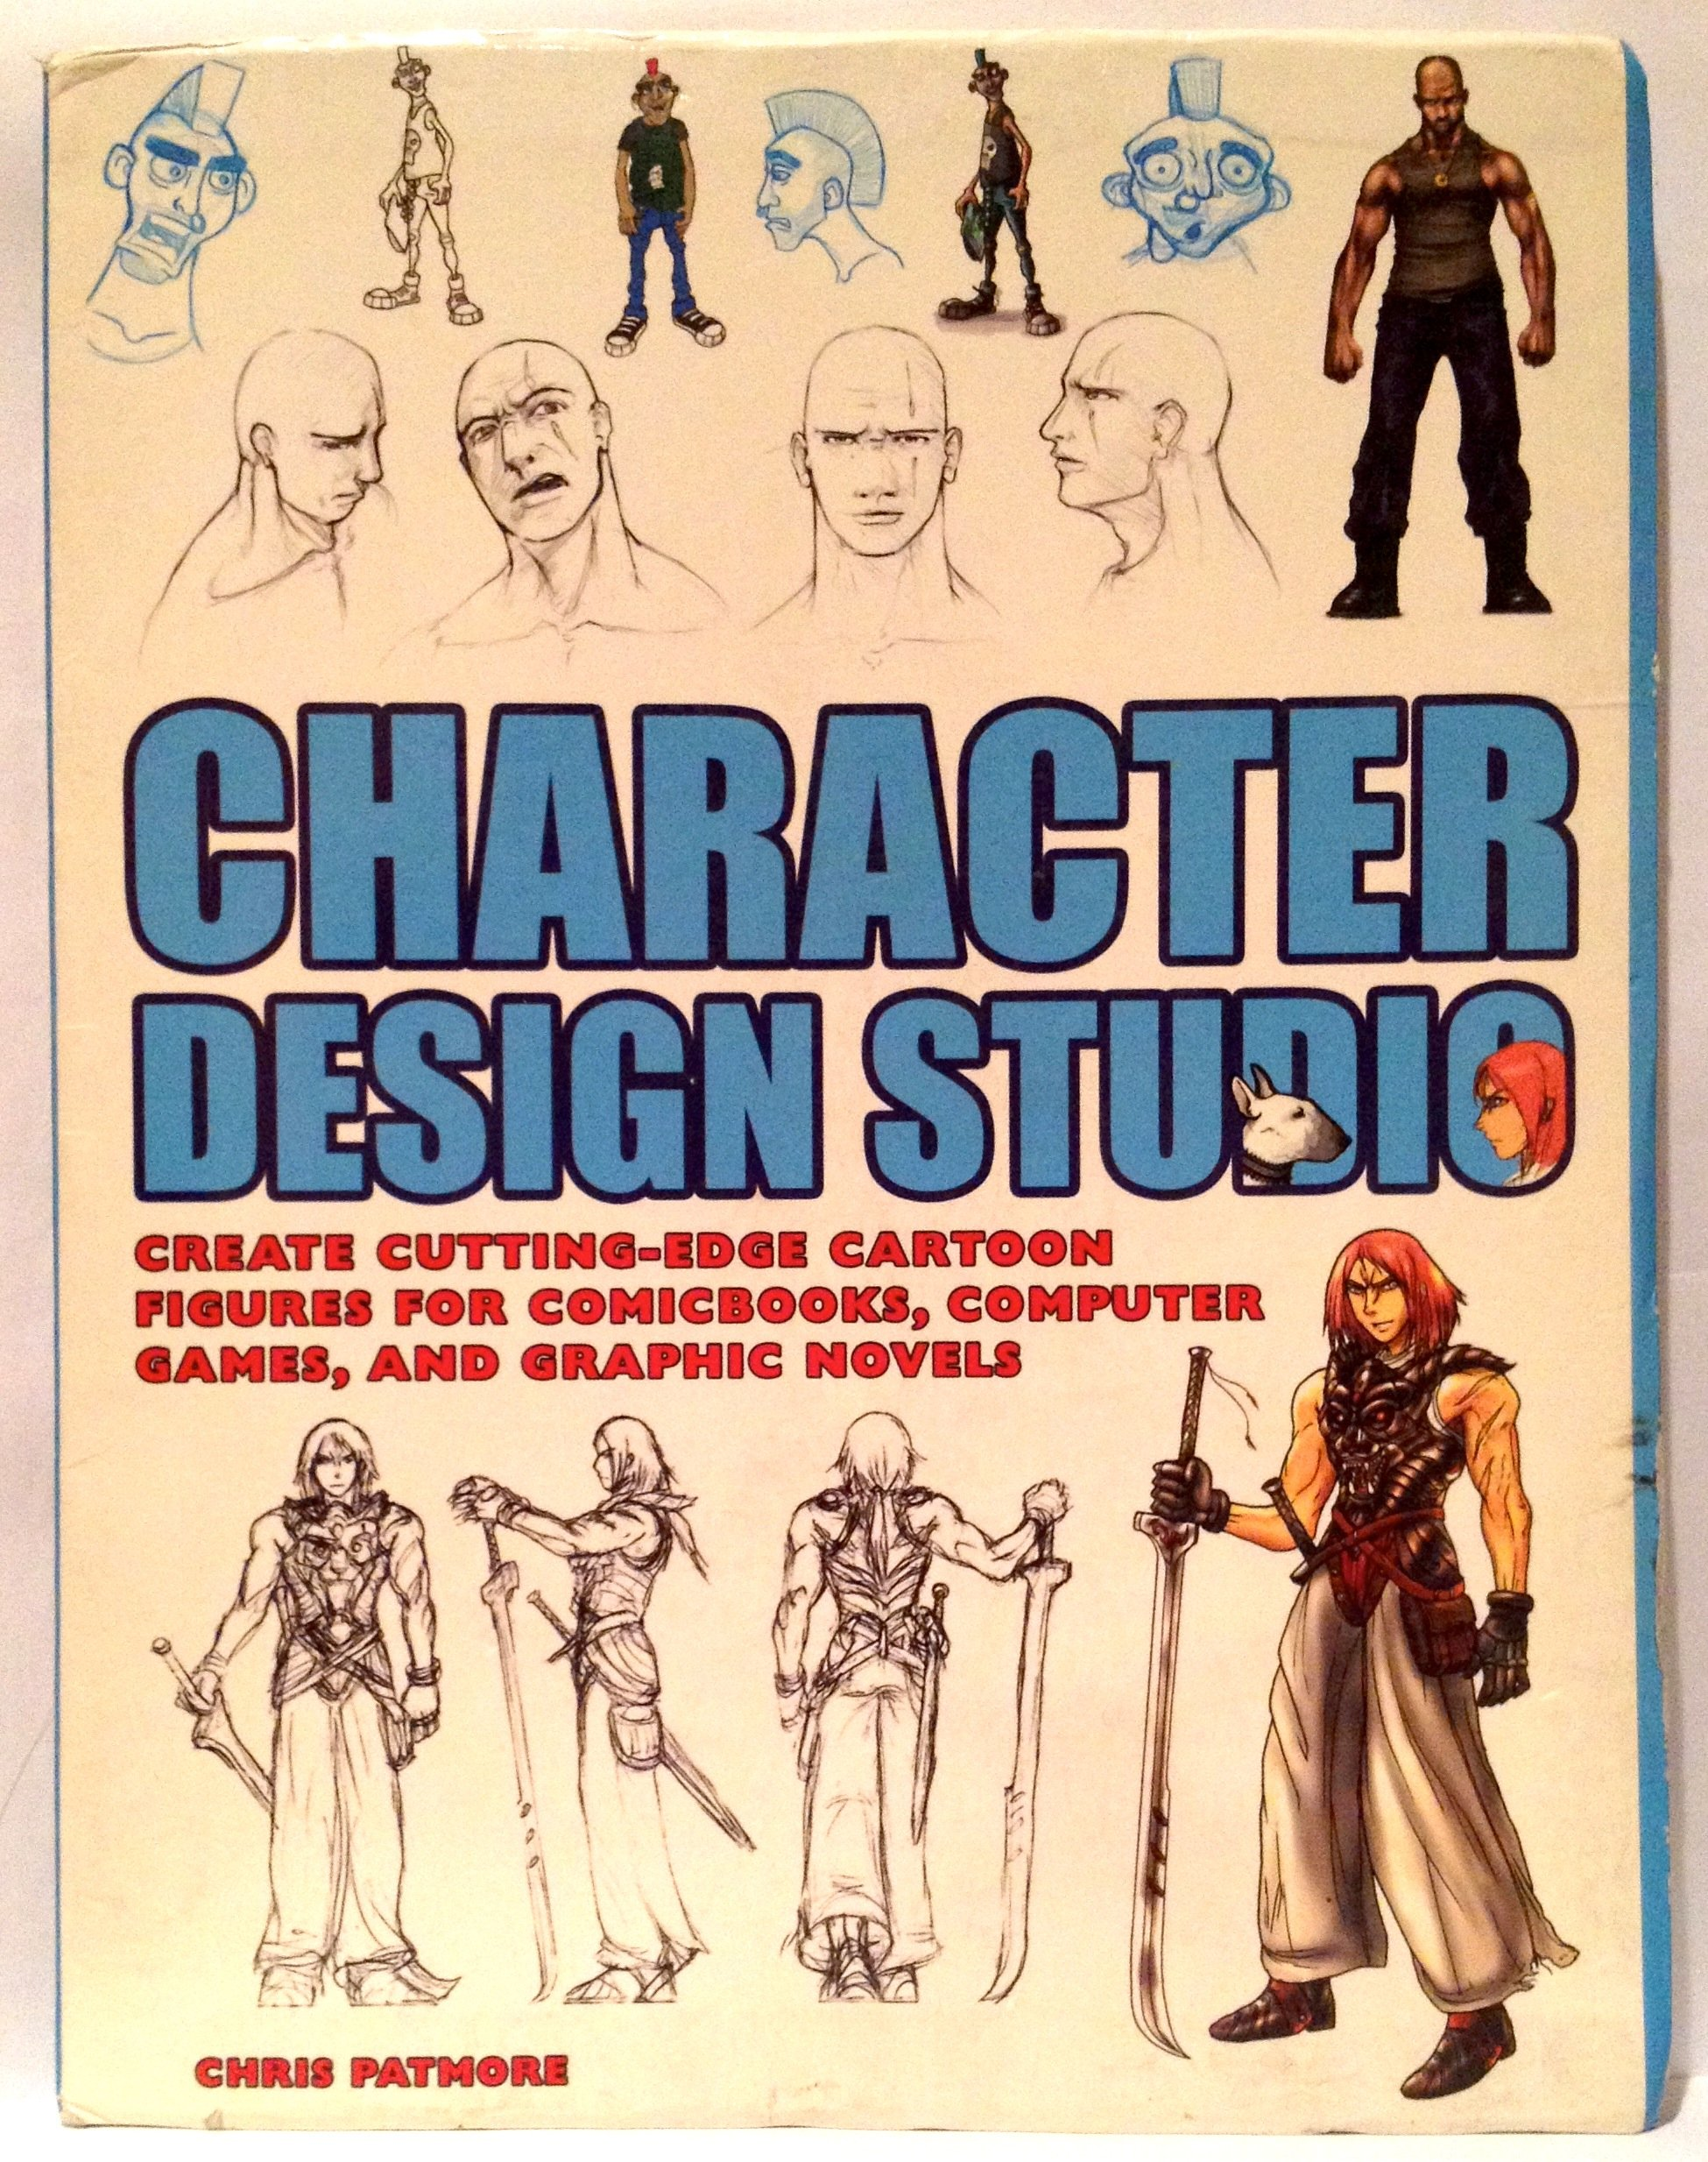 Cartooning The Ultimate Character Design Pdf : Cartoon character design pdf ankaperla